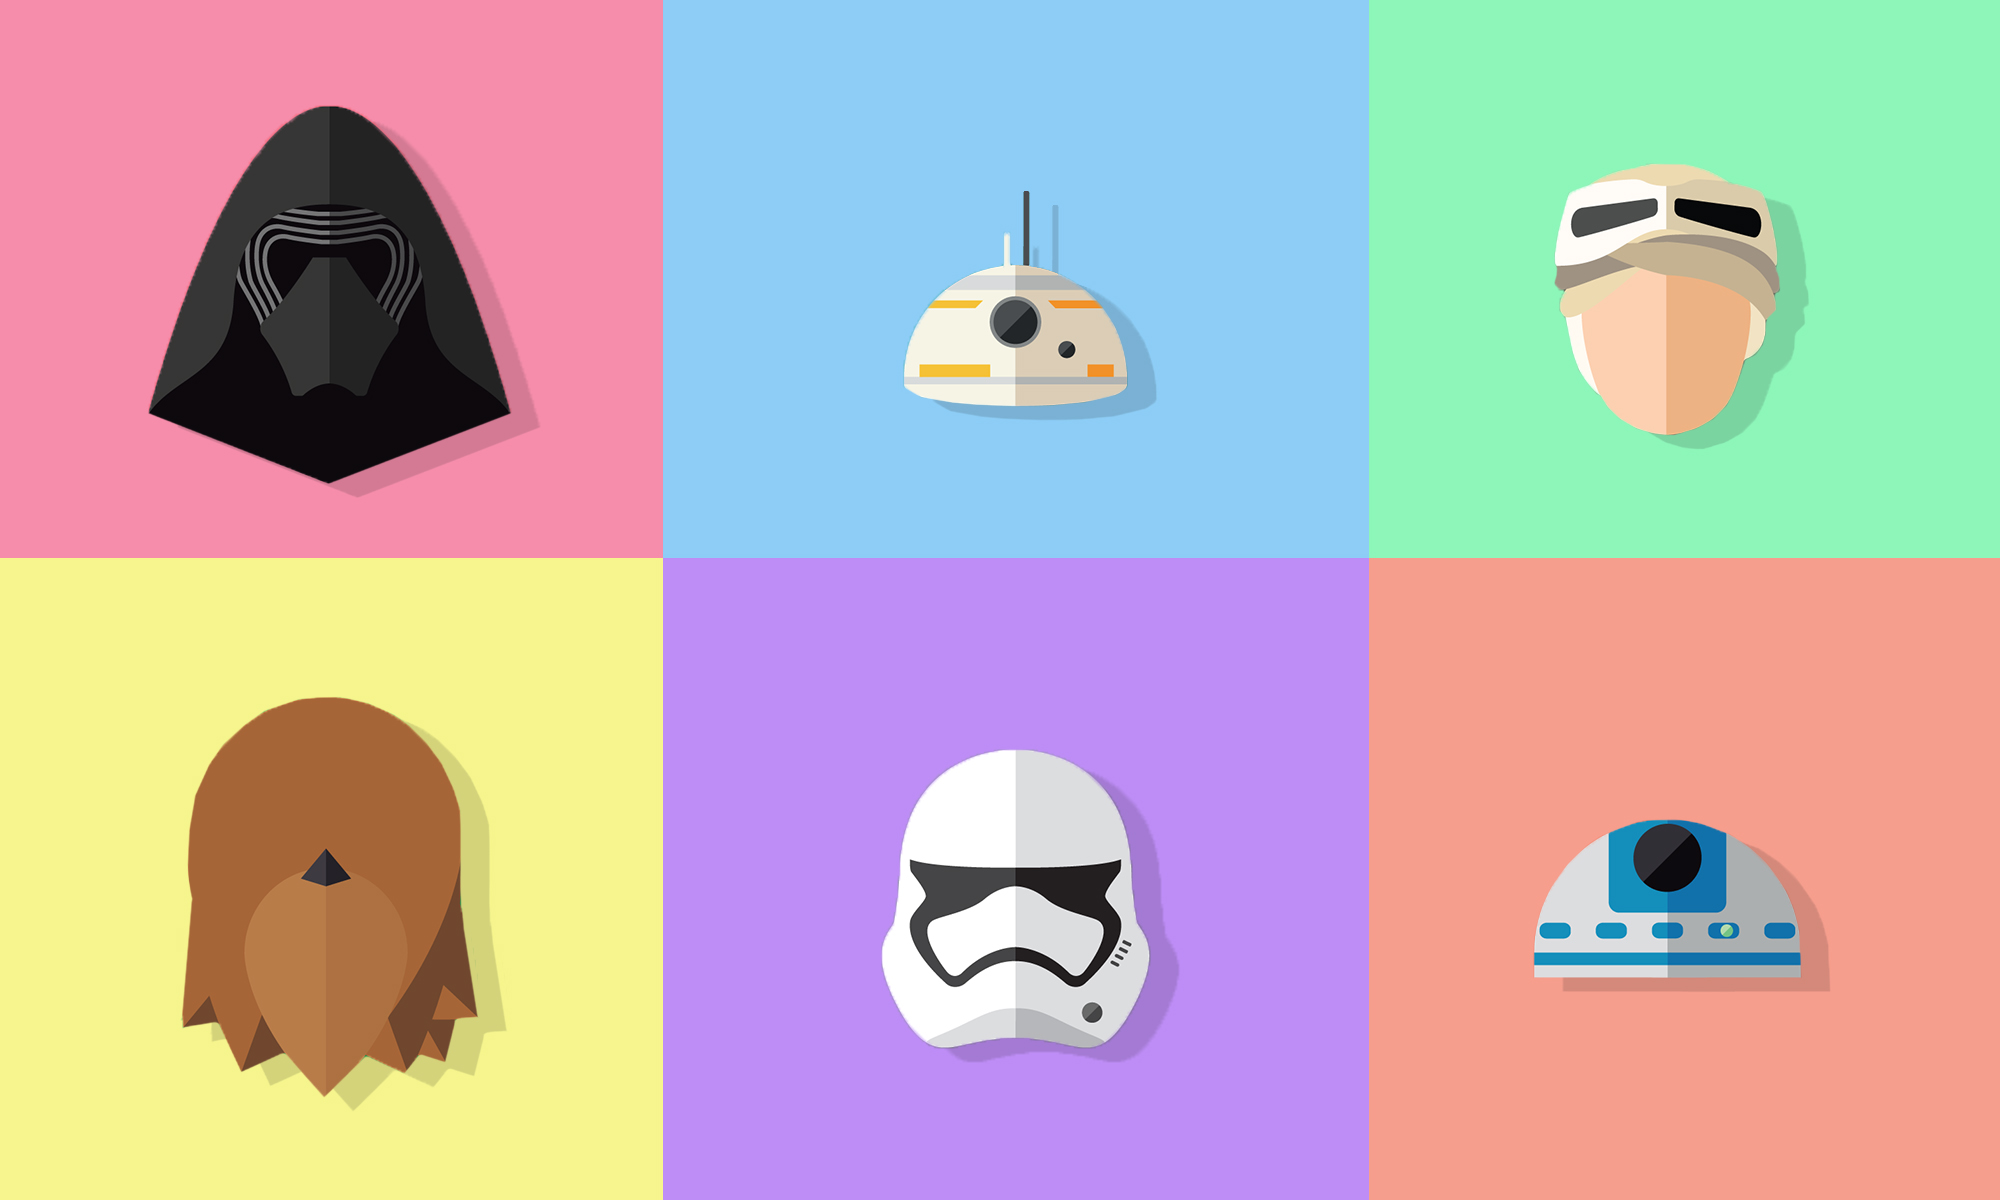 Star Wars gadgets and accessories featured image